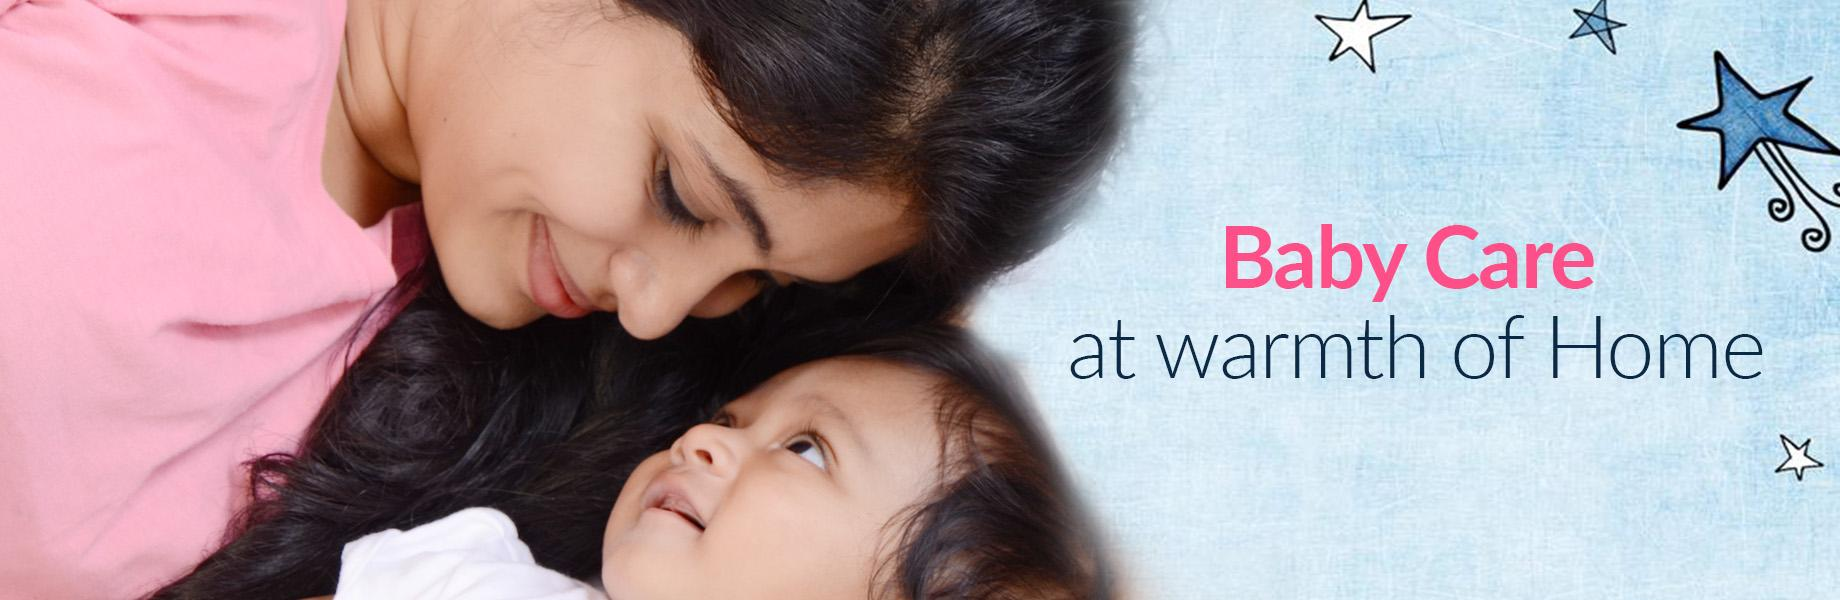 Nanny Care Services at Home